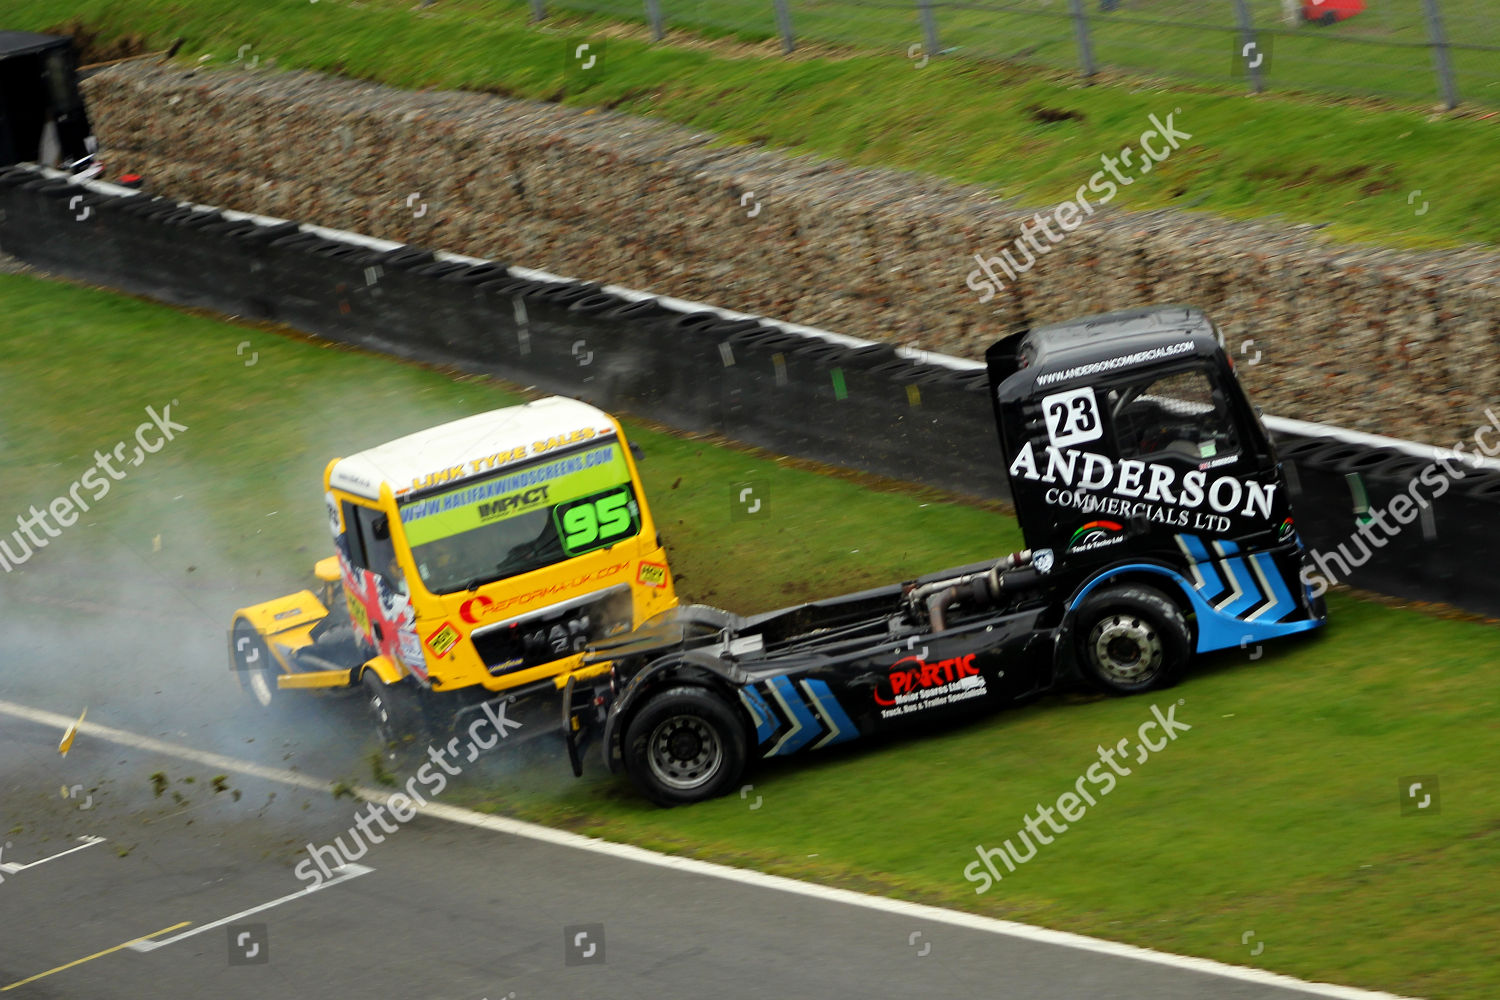 Brands Hatch Truck Racing >> Jamie Anderson Richard Collett 100 Mph Truck Editorial Stock Photo